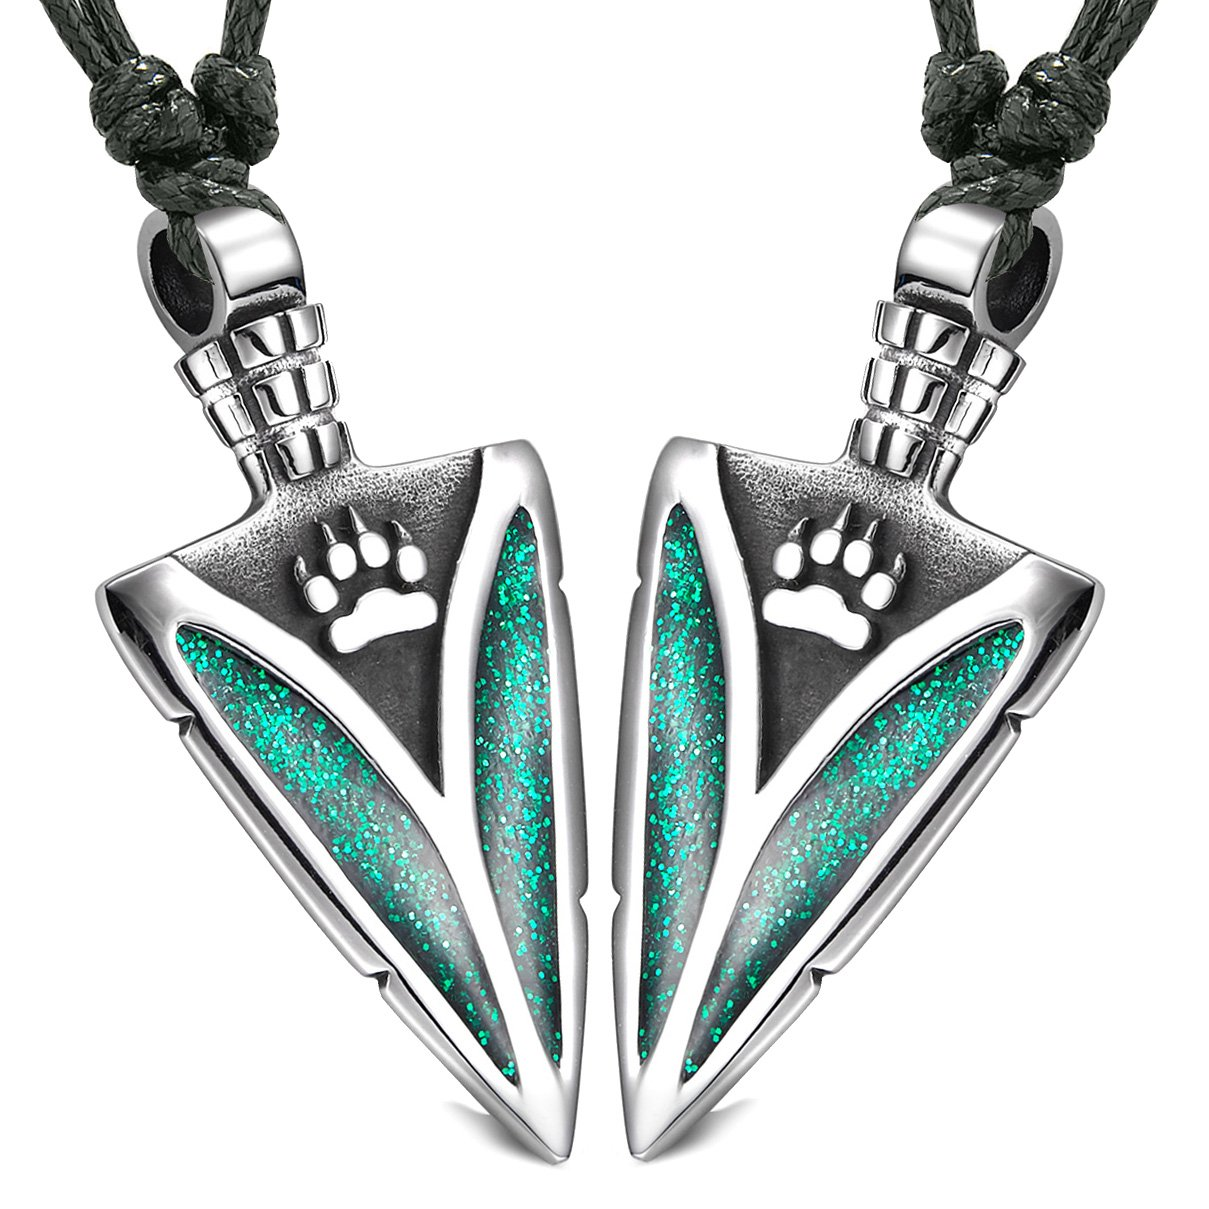 Arrowhead Wild Wolf Paw Love Couples Best Friends Set Amulets Sparkling Royal Green Adjustable Necklaces